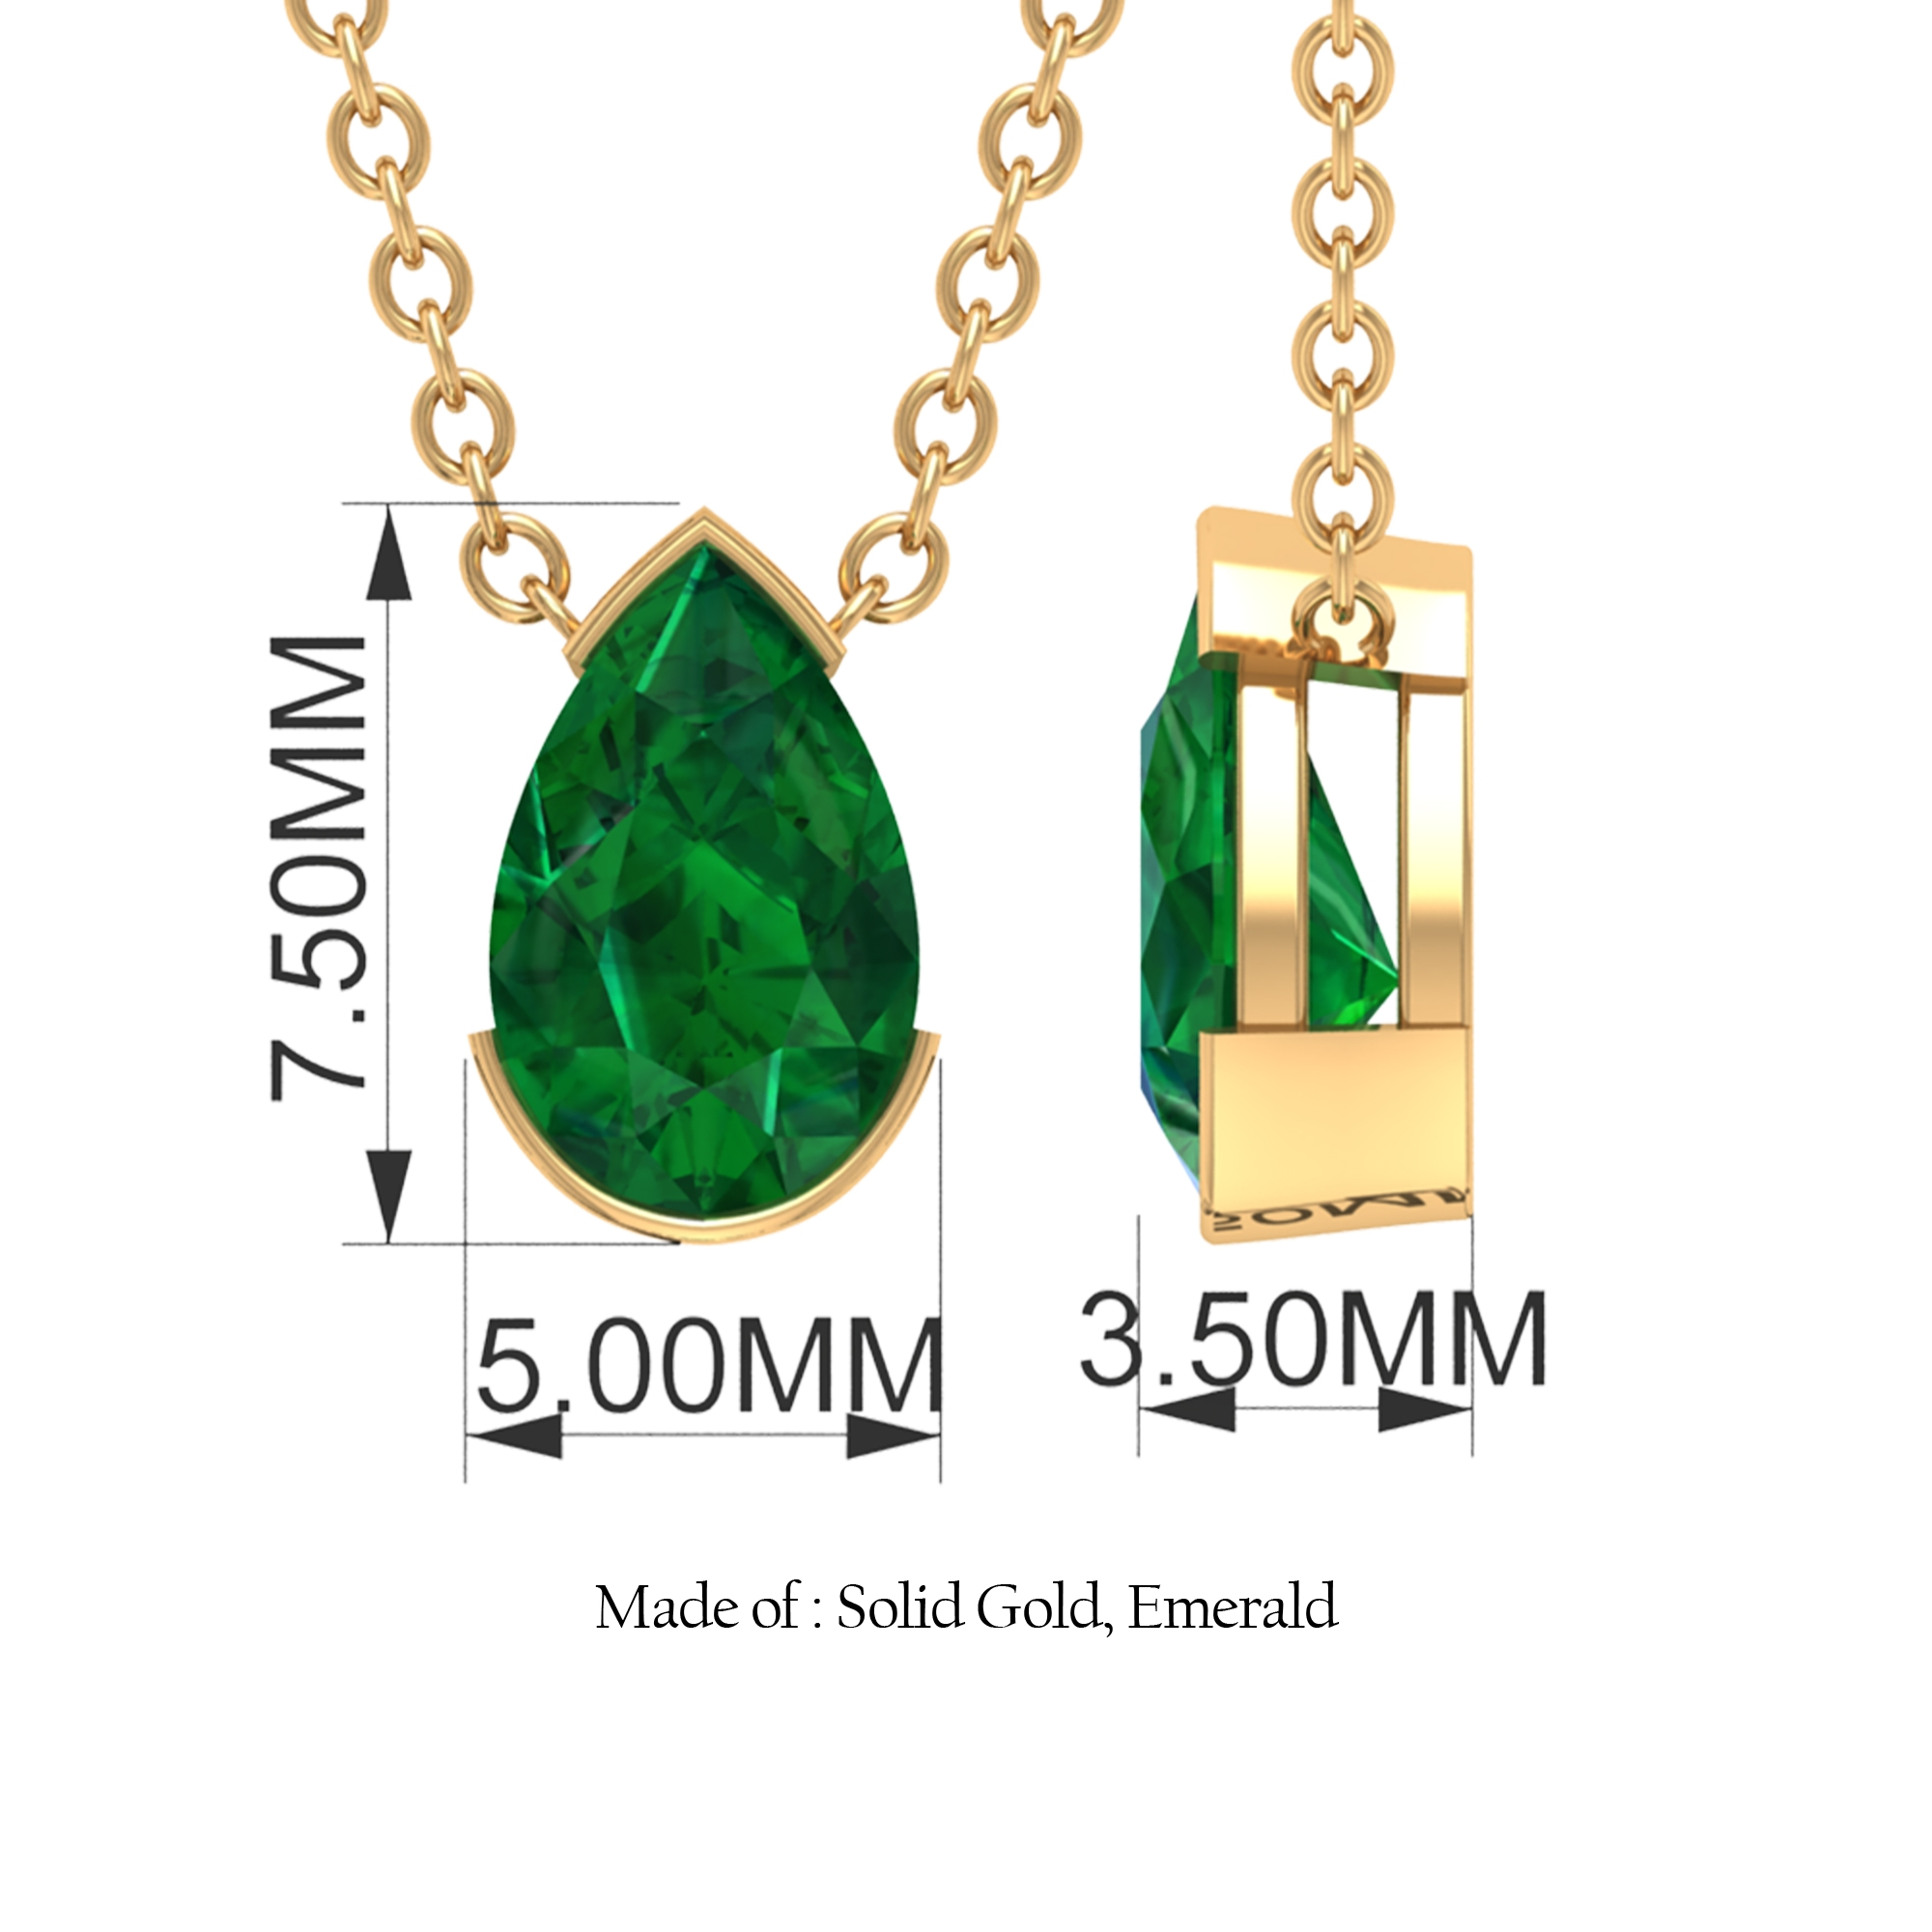 4.5X7 MM Pear Cut Emerald Solitaire Simple Necklace in Half Bezel Setting